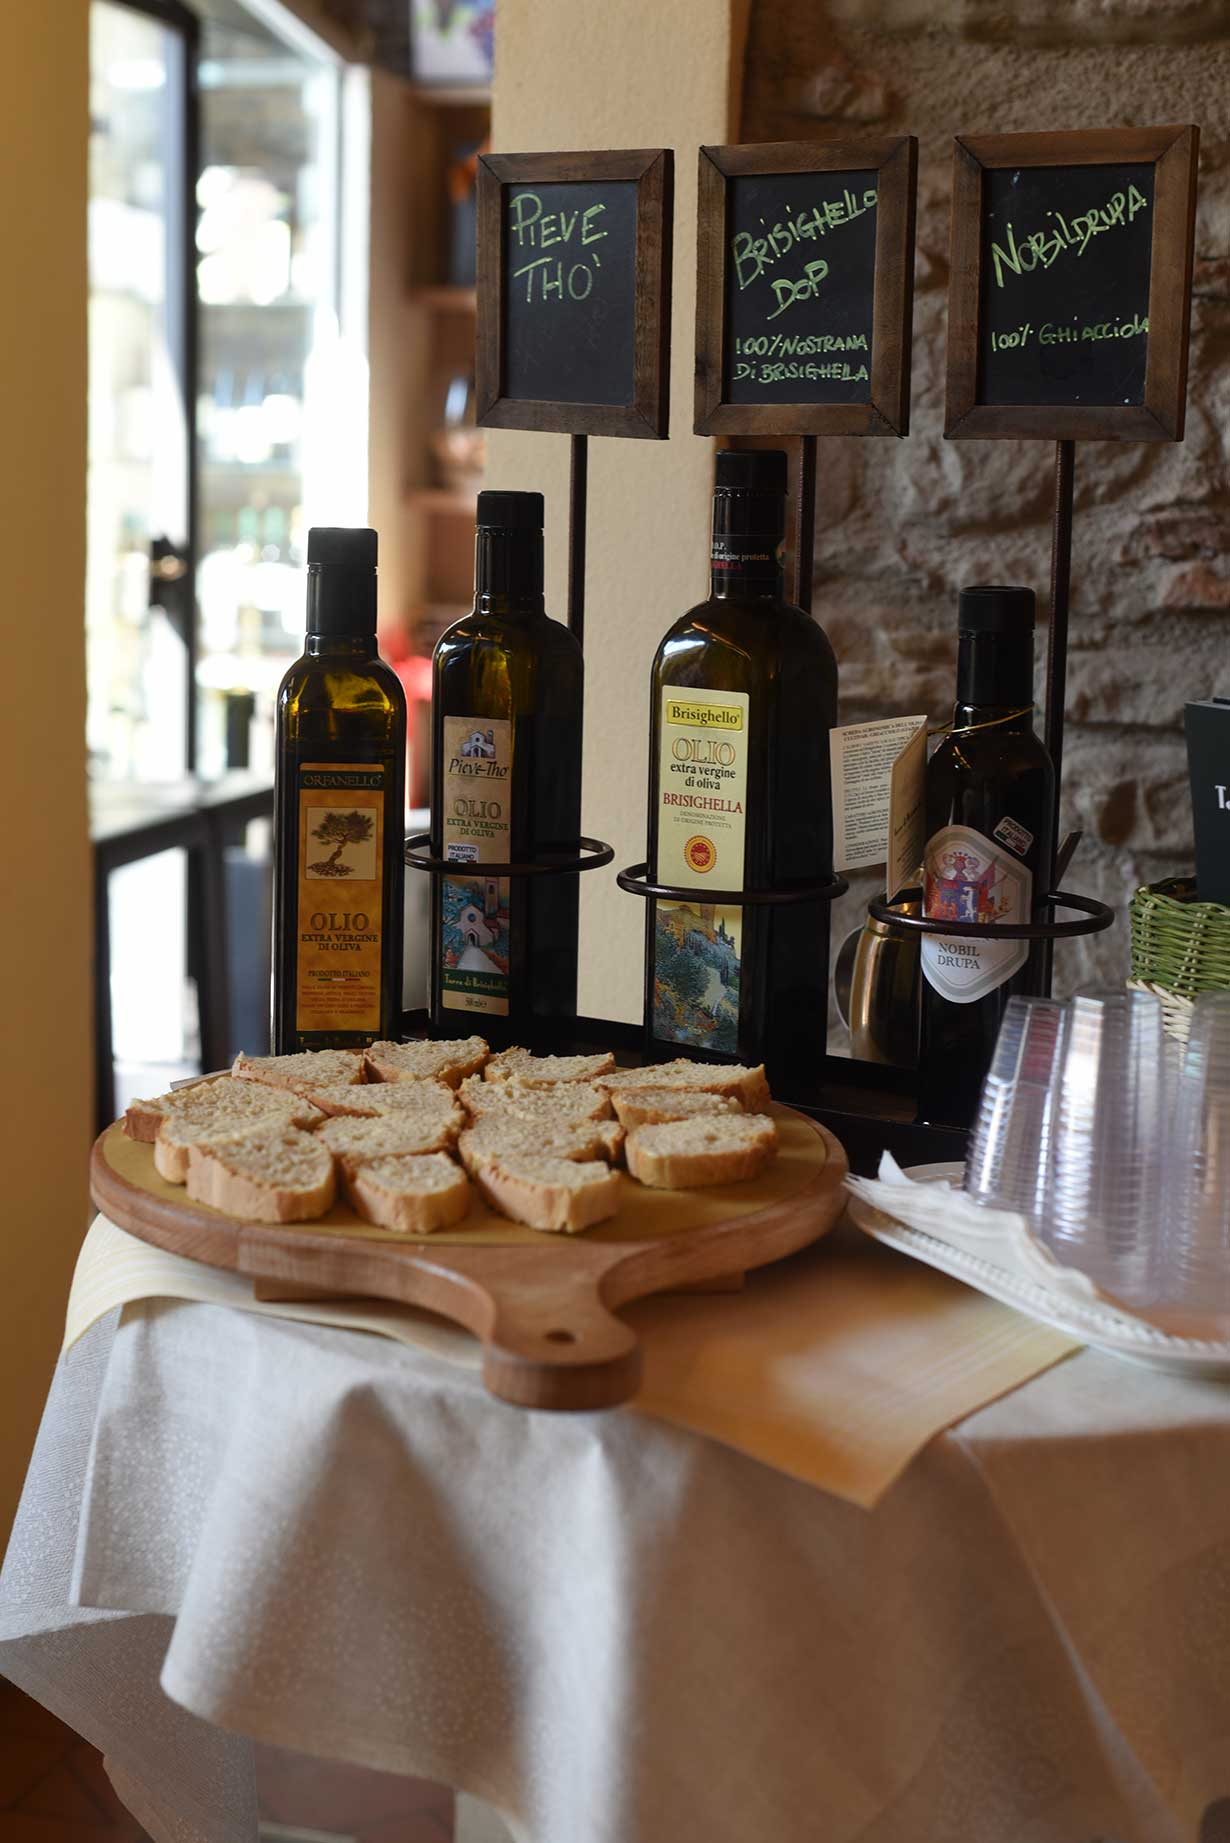 11 Things To Eat and Drink in Emilia Romagna